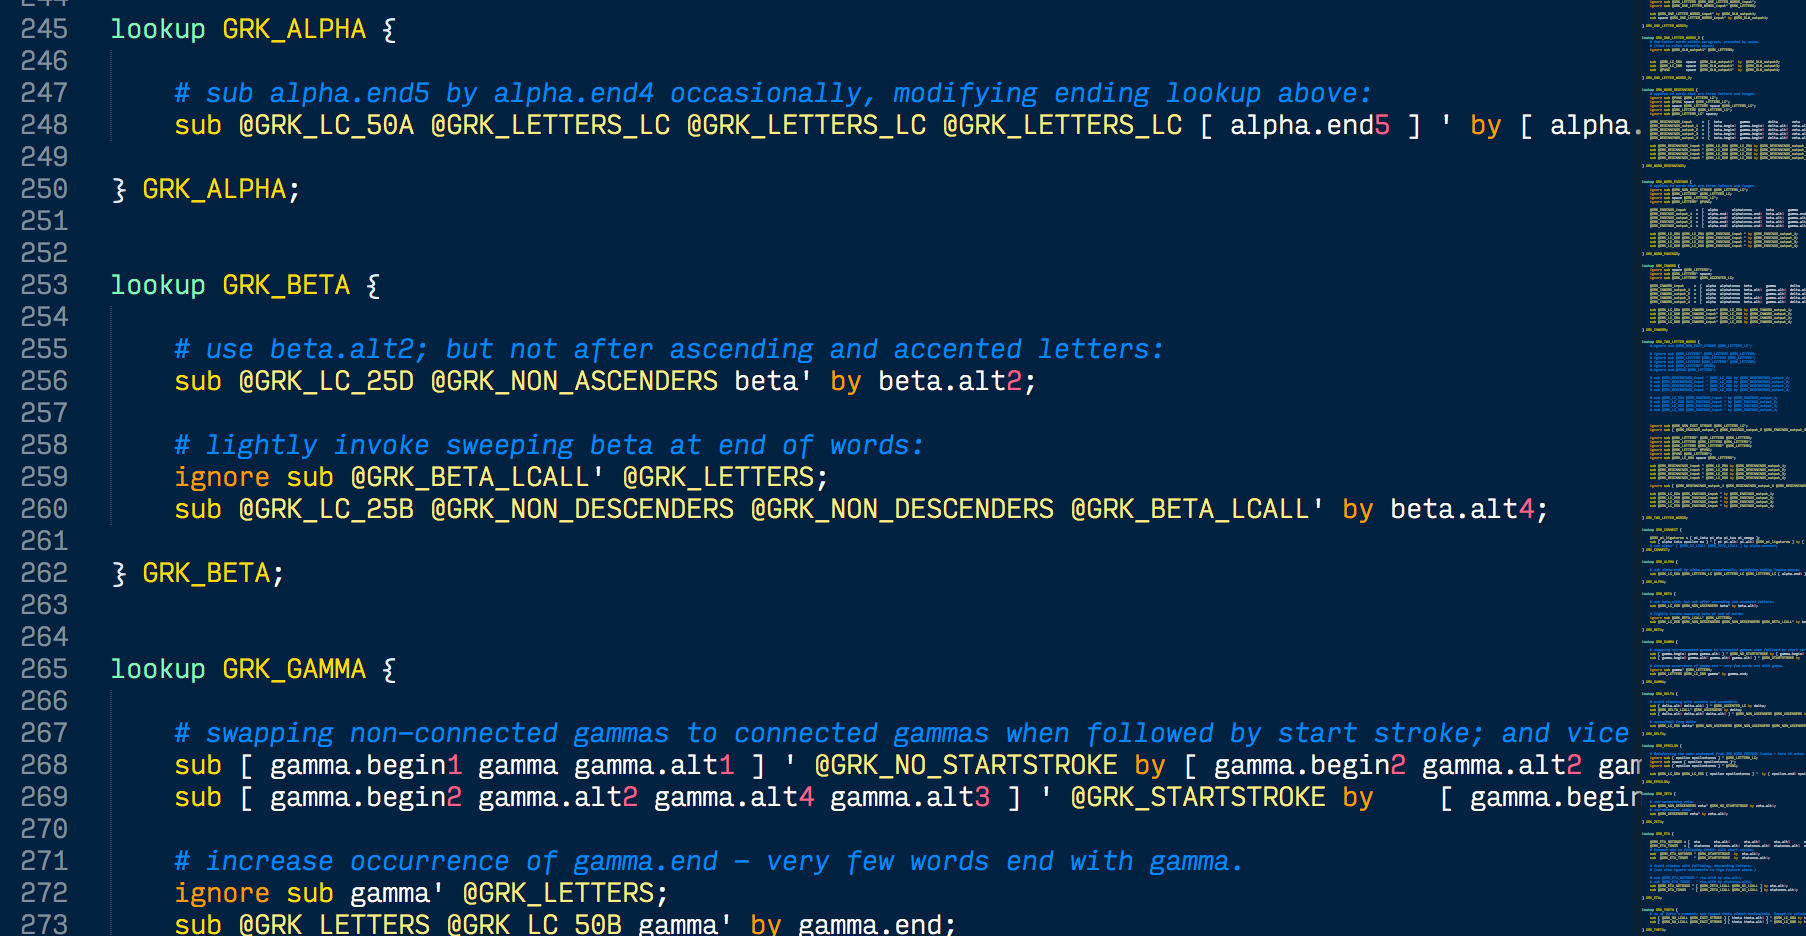 Snippet of code used to program contextual alternates into a font file